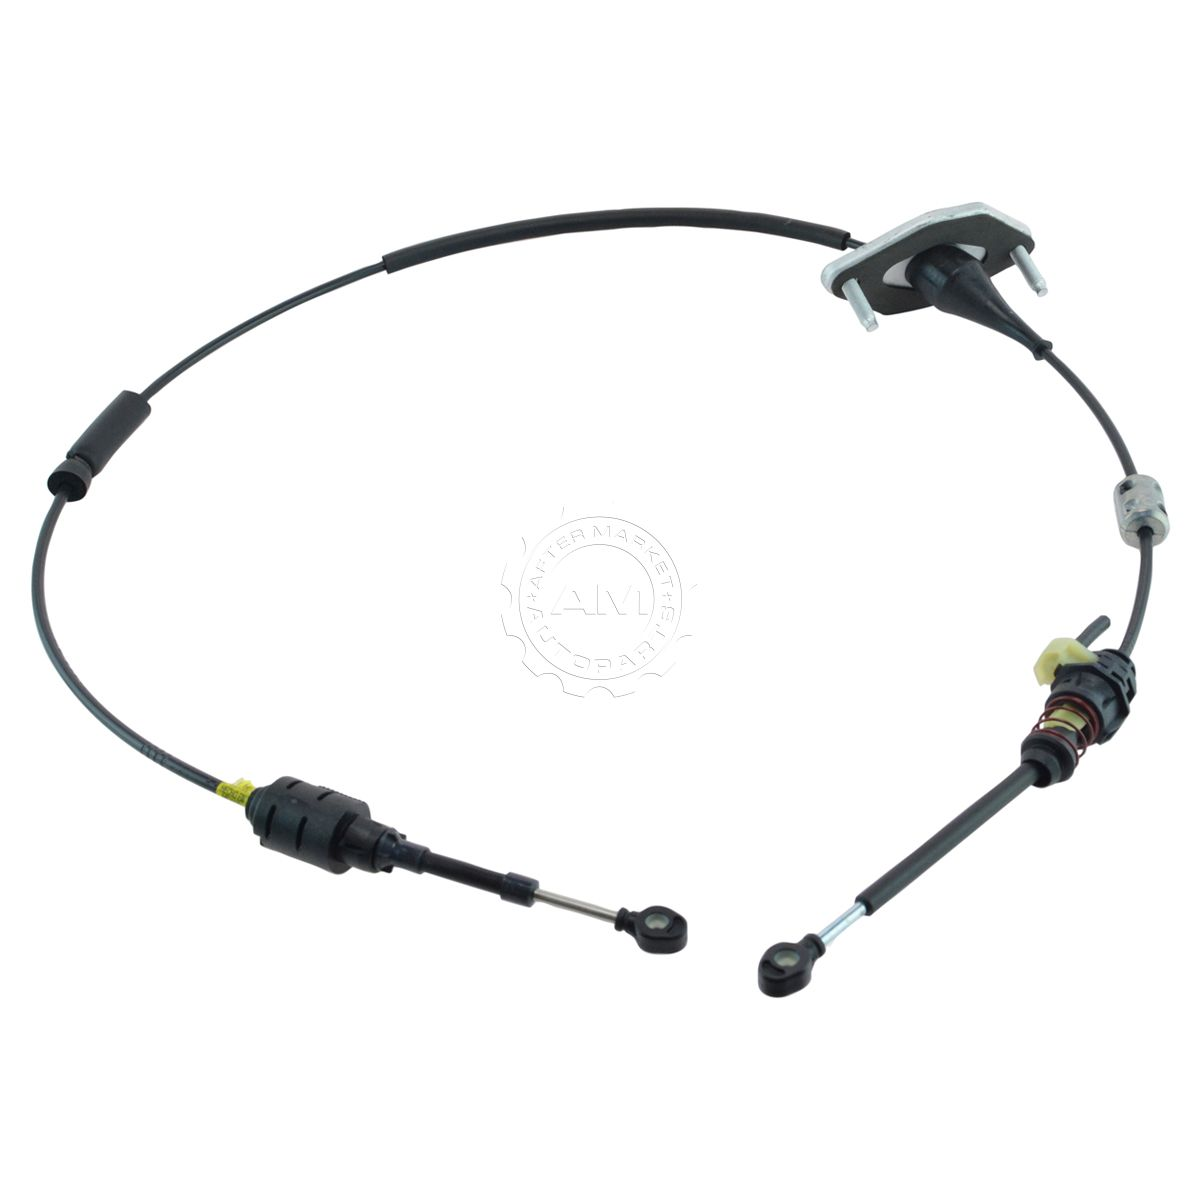 OEM Transmission Gear Selector Shifter Cable for 2001